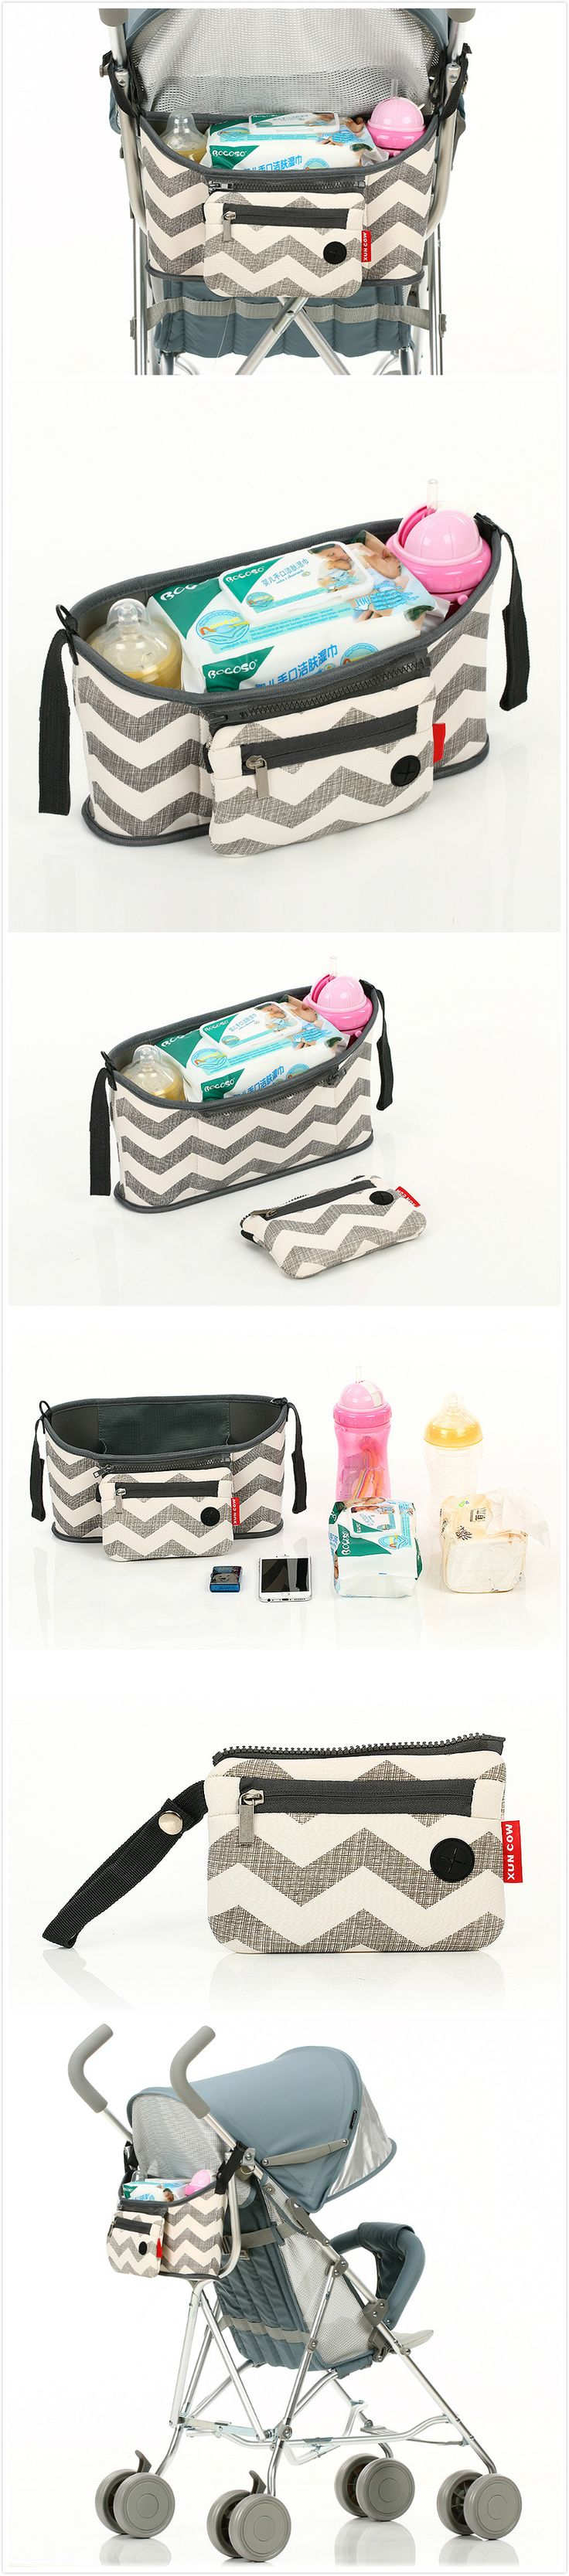 Baby Diaper Bags For Strollers Waterproof Nappy Changing Bags Mommy Stroller Bags